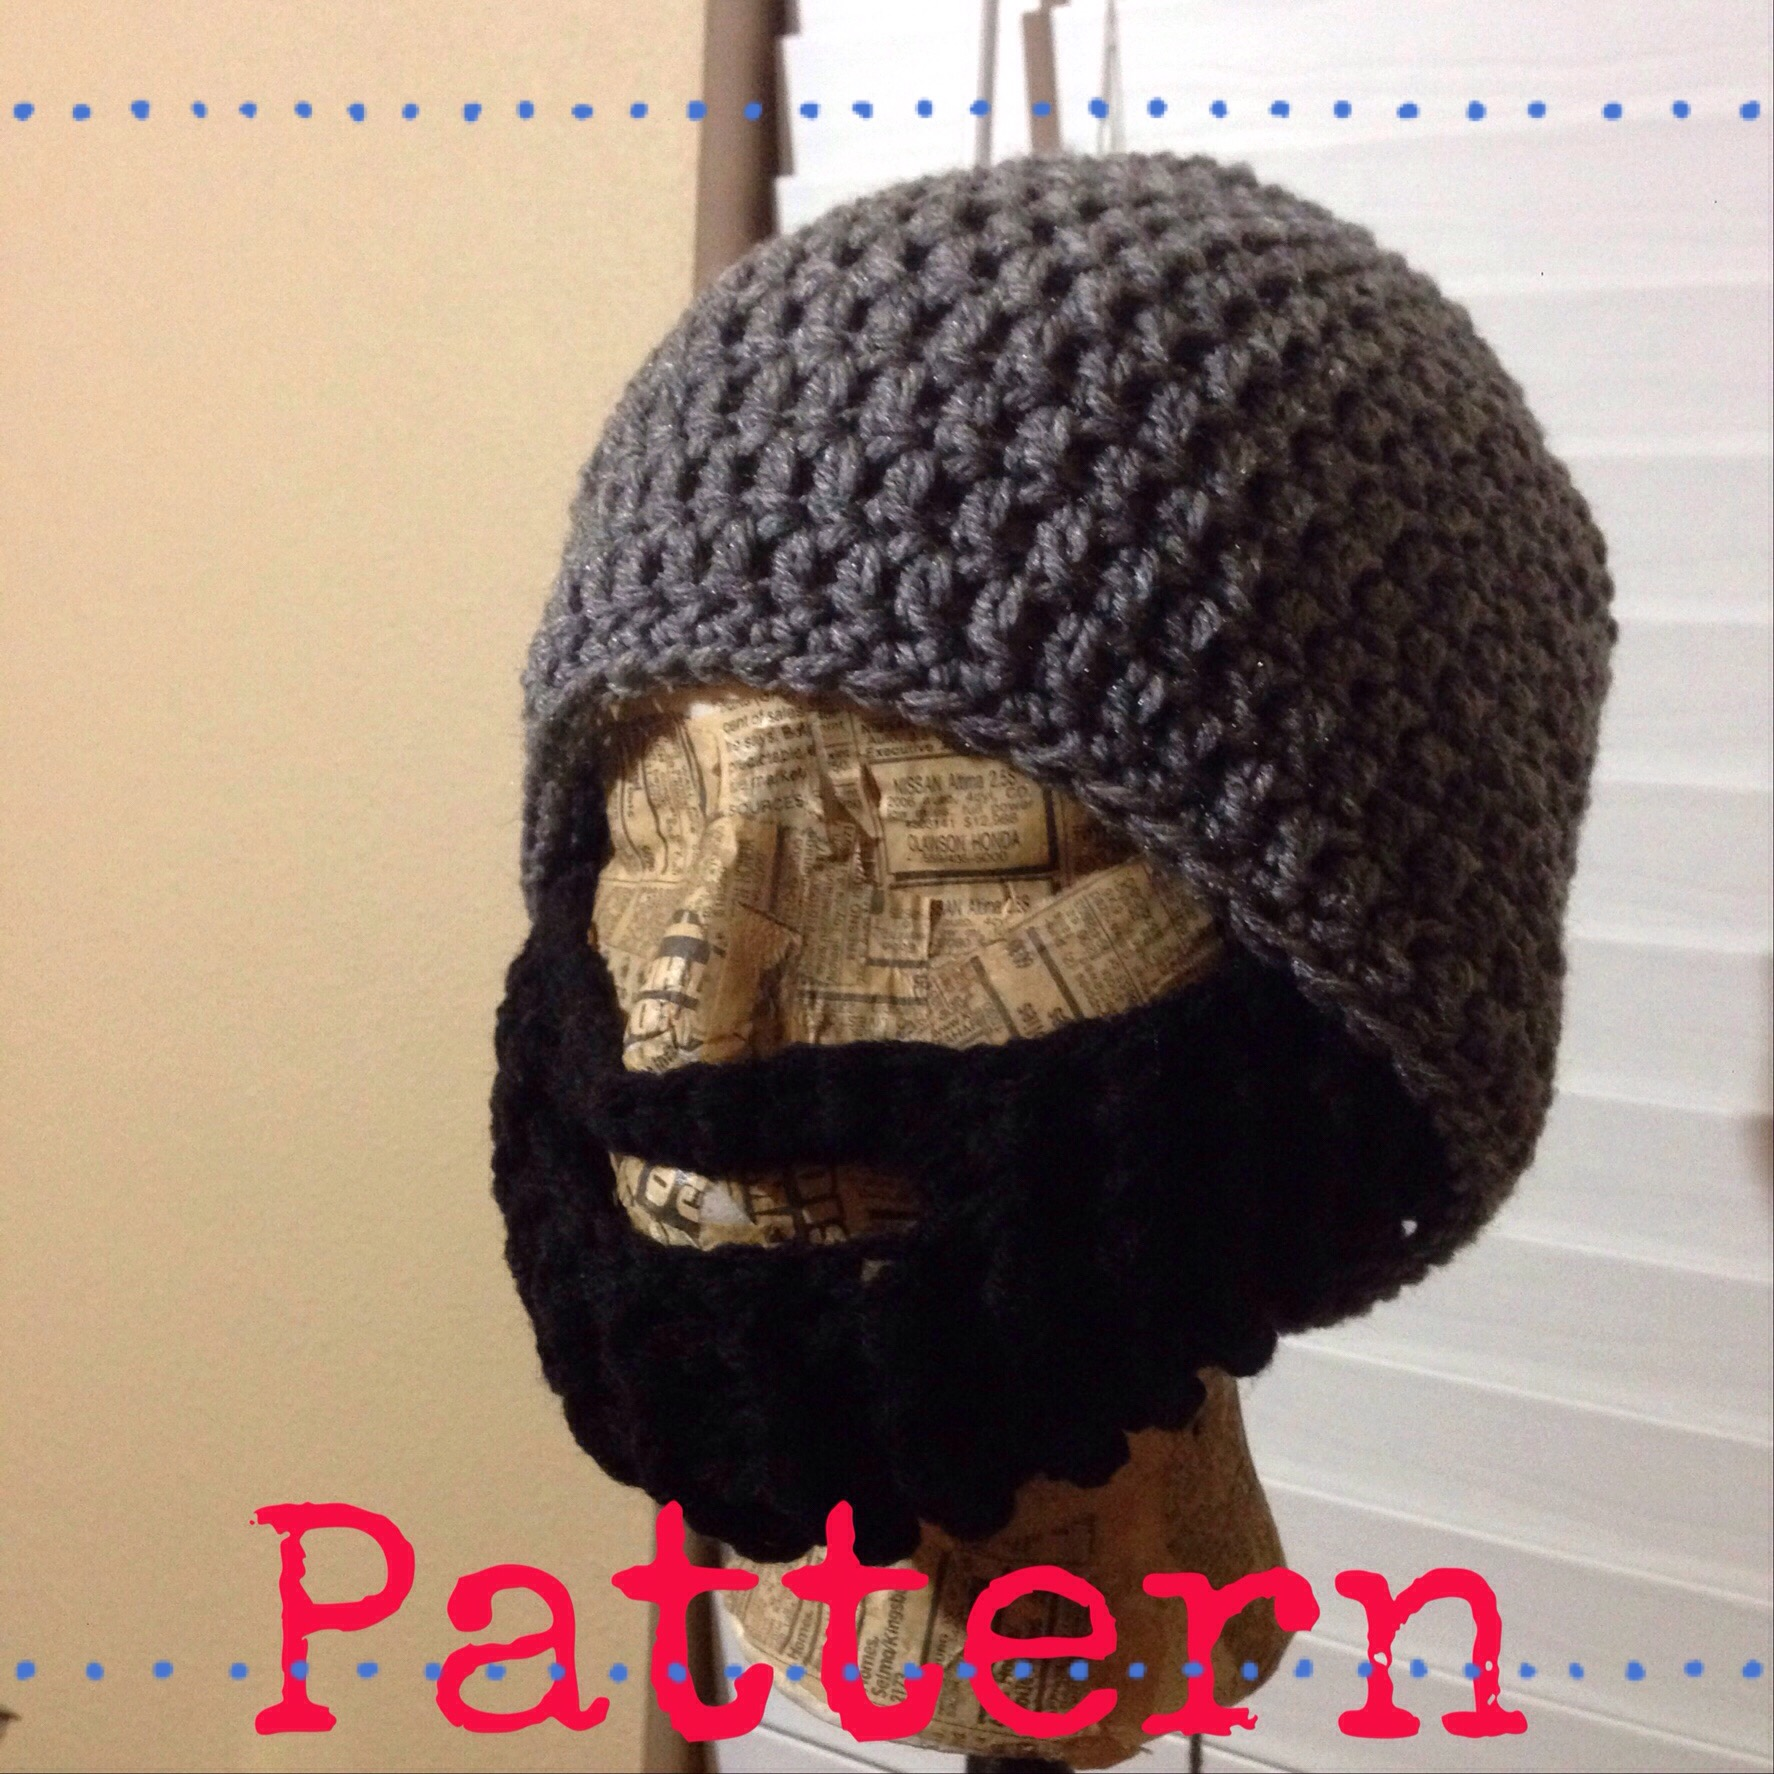 ... california stitches crochet patterns pattern crochet beard beanie